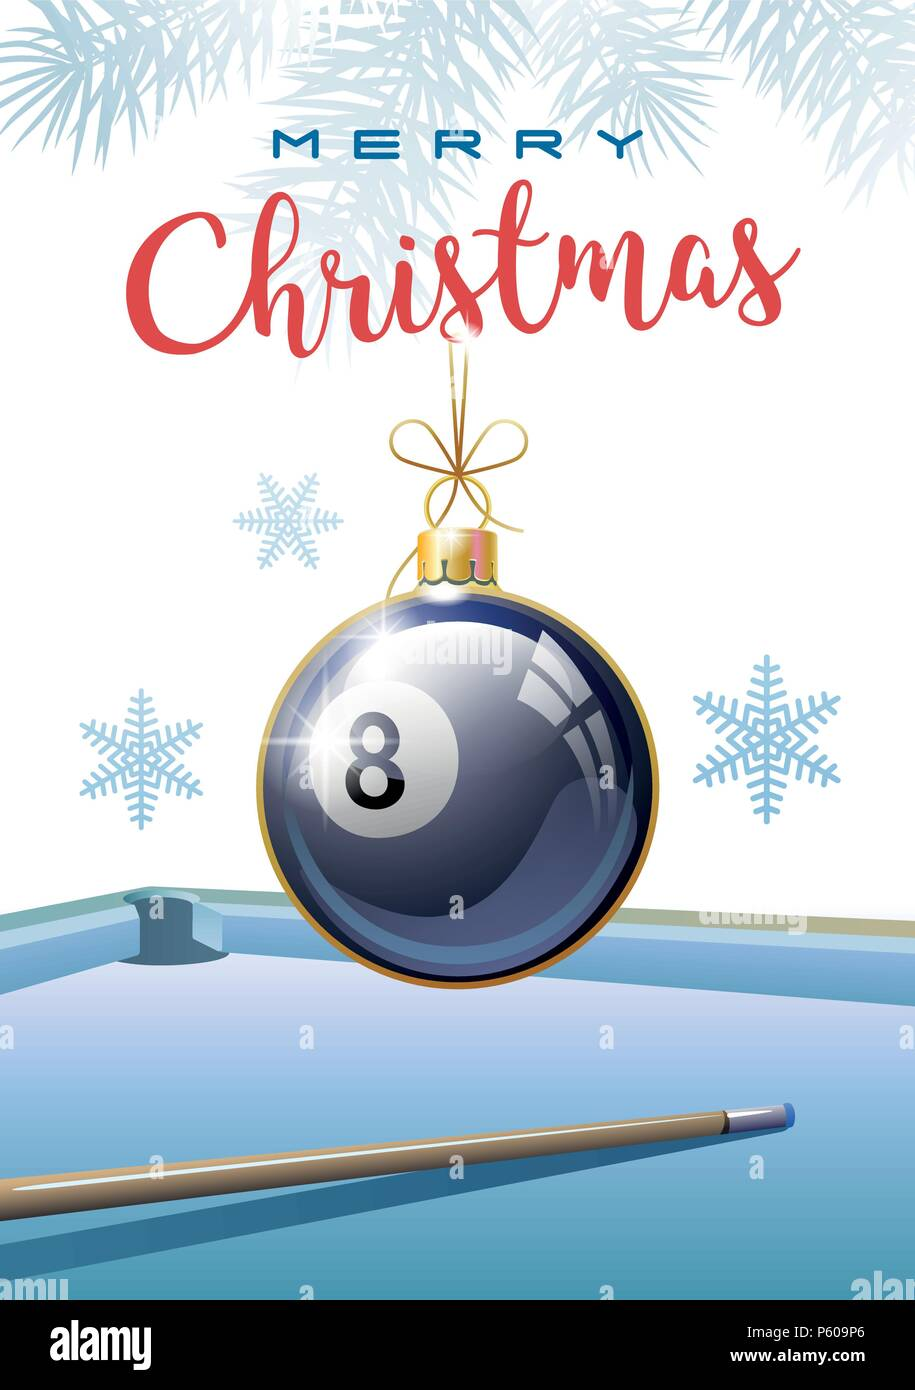 Merry Christmas. Sports greeting card. Realistic Billiard ball in the shape of a Christmas ball. Vector illustration. - Stock Vector